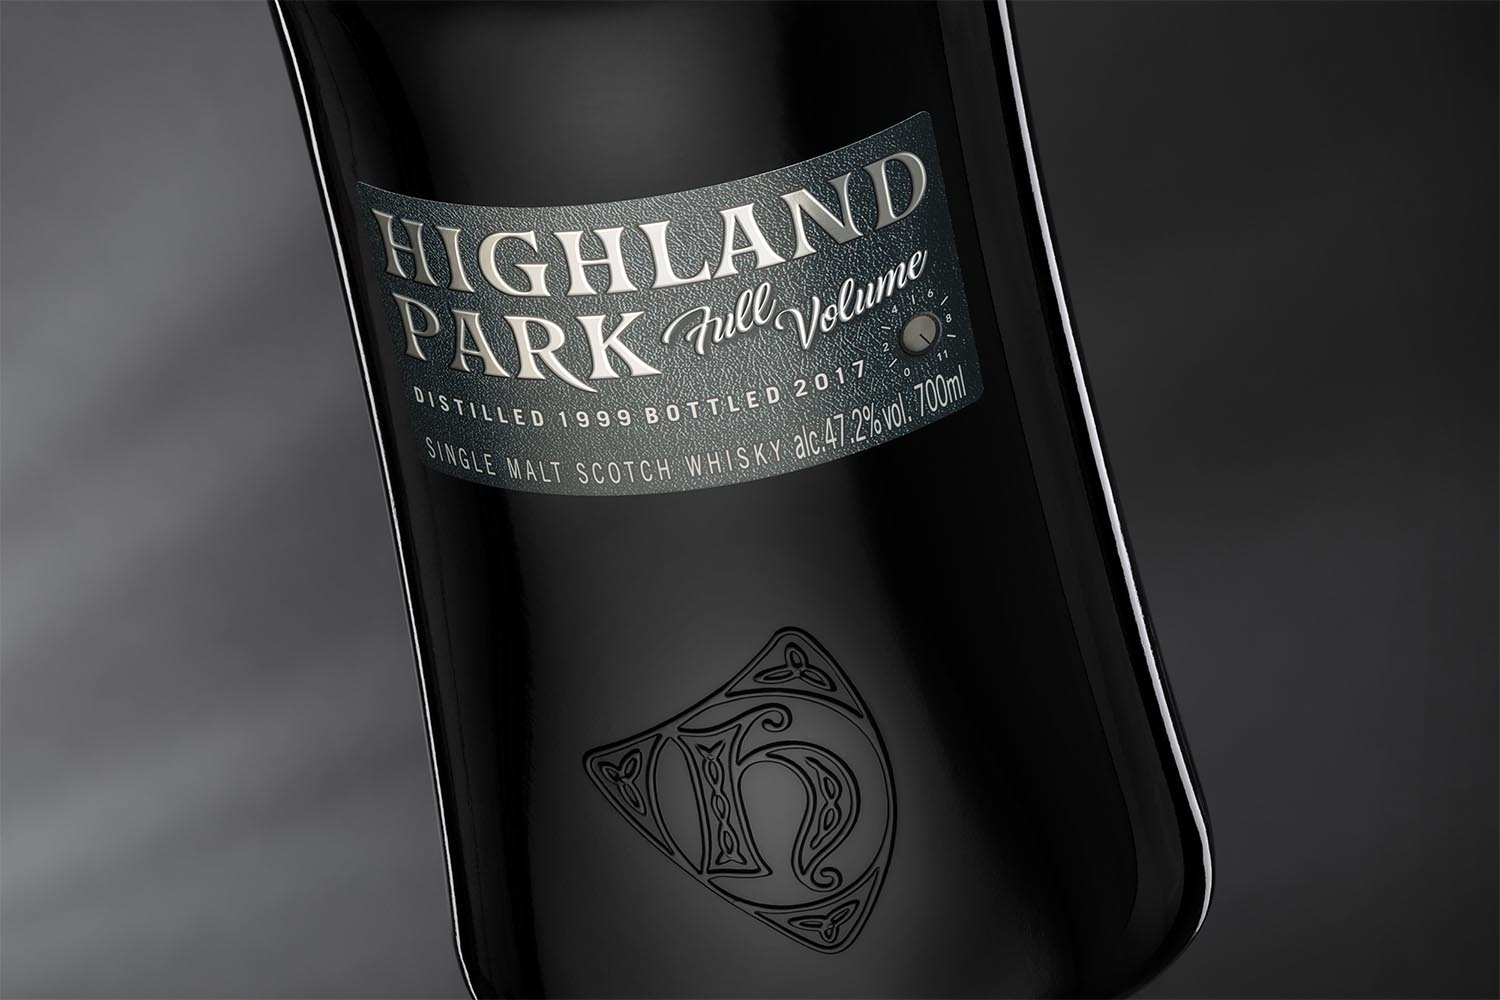 Mountain_Agency_Glasgow_Highland Park_Full Volume_001.jpg